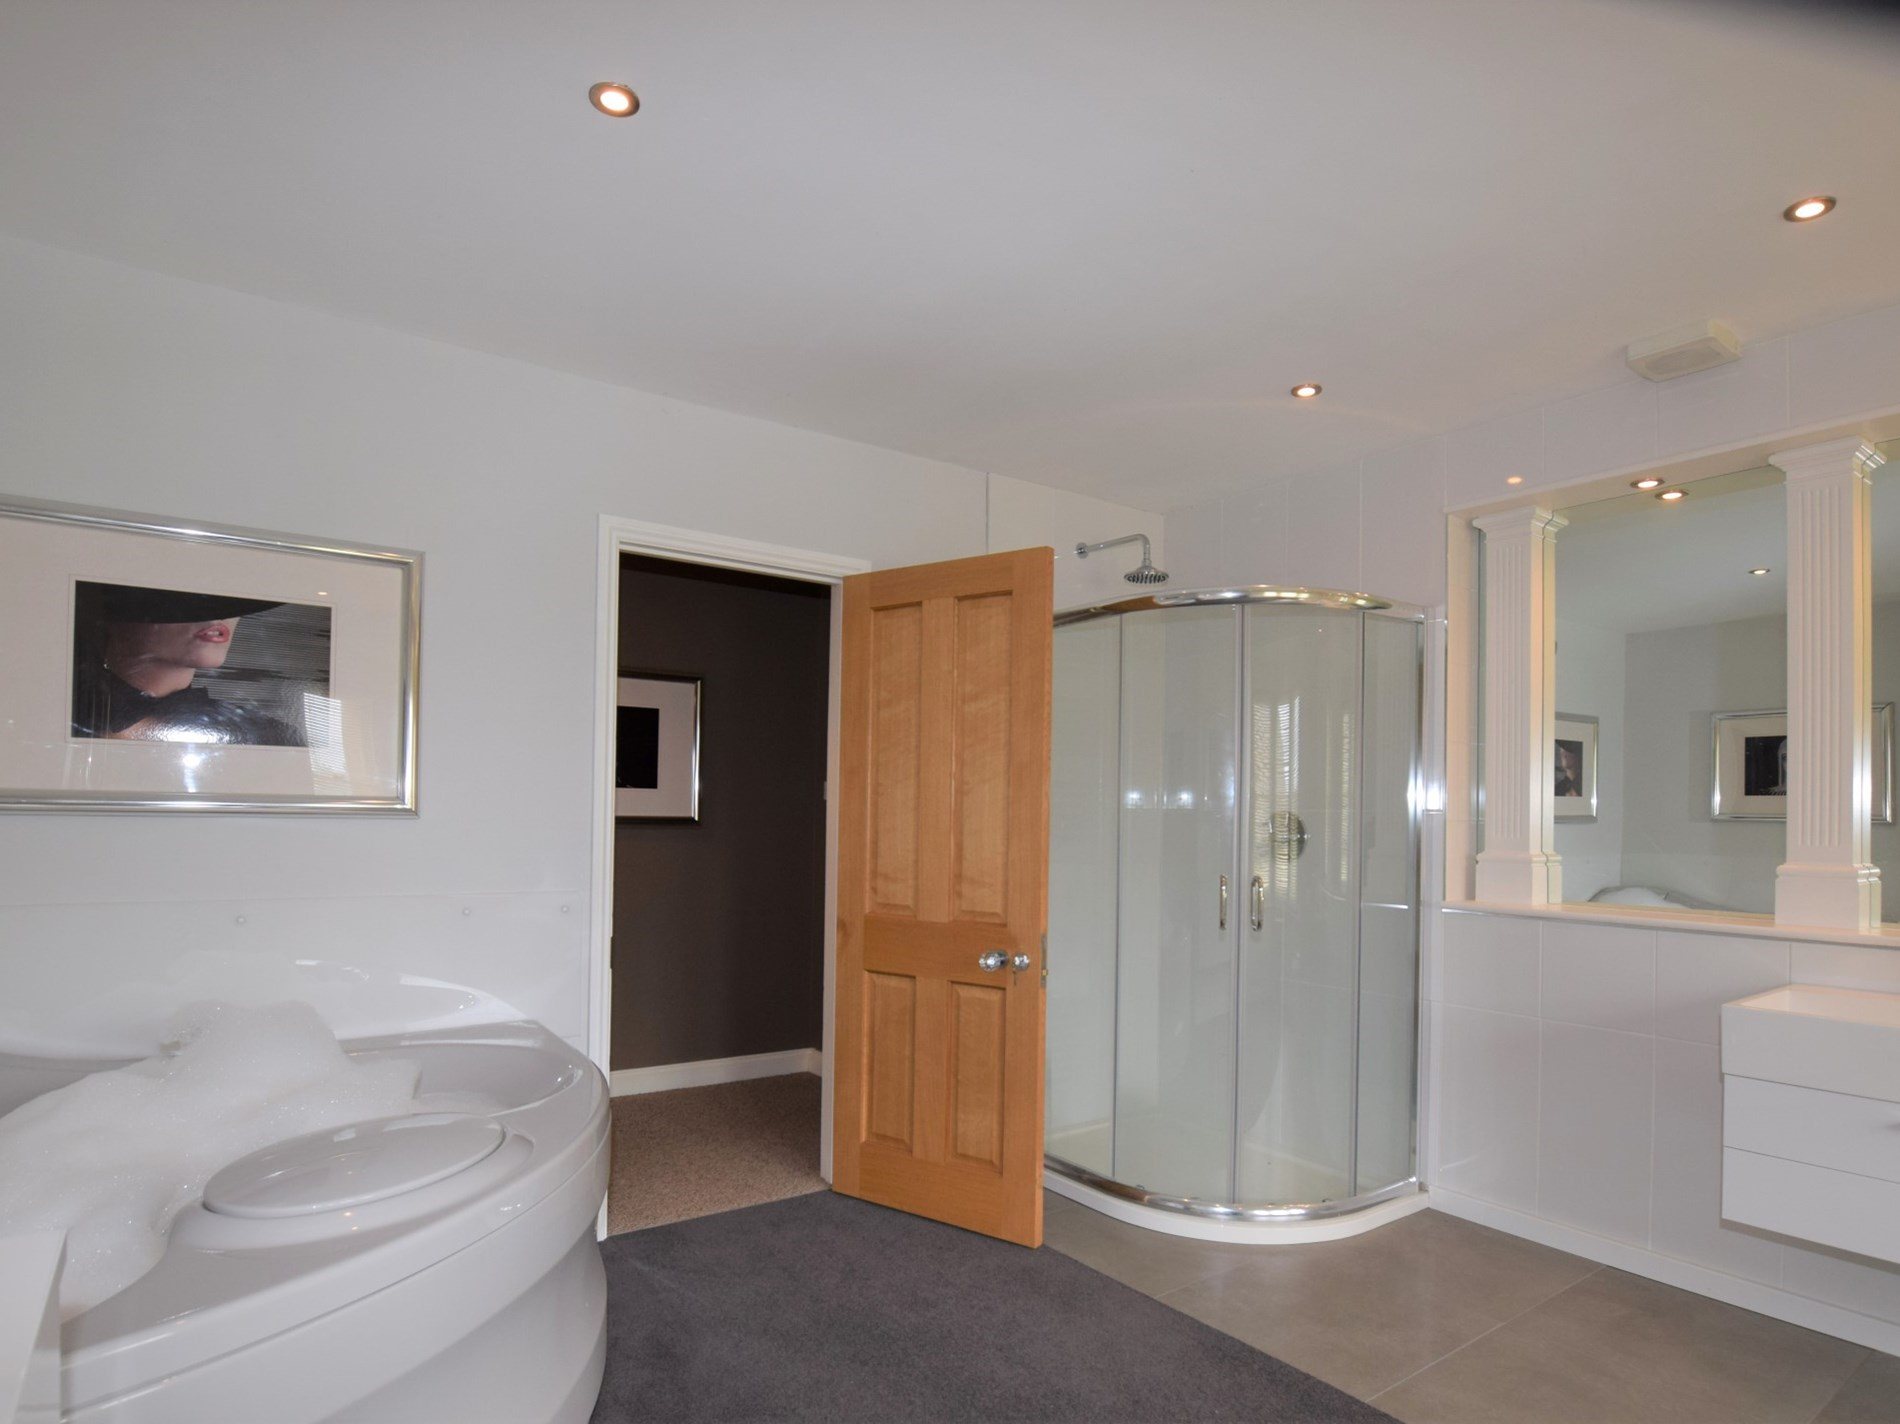 Shower cubicle and spa bath next door to the twin room